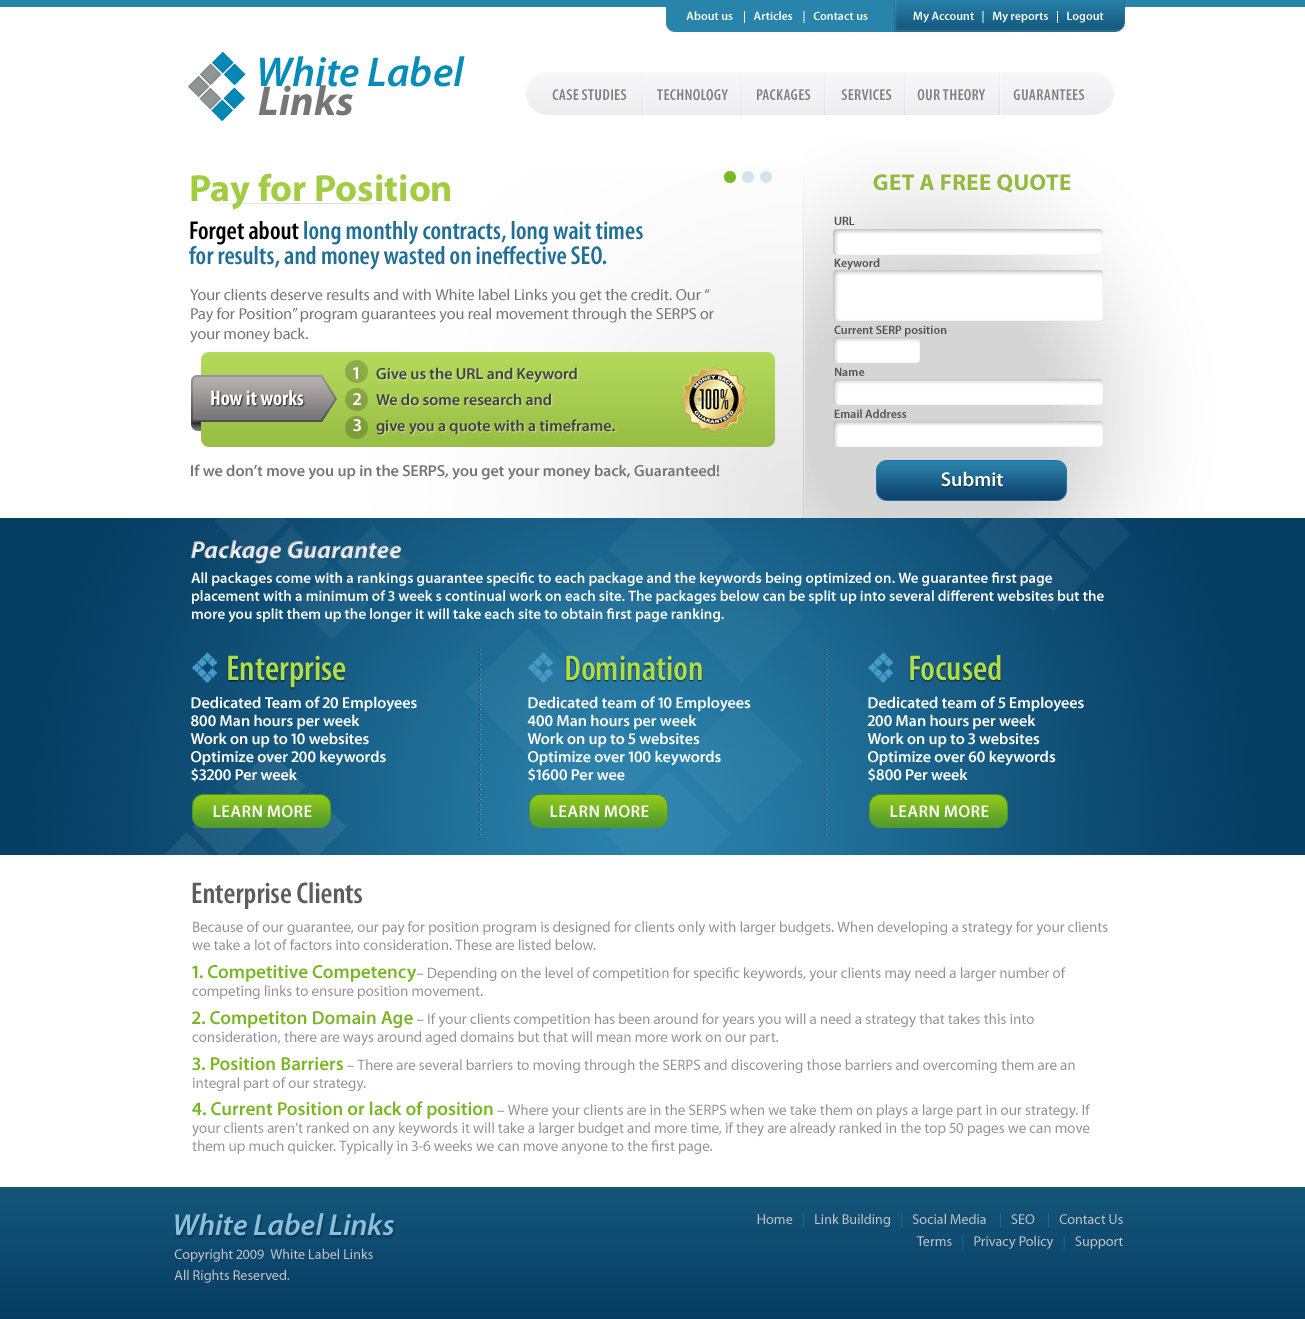 Create the next website design for White Label Links